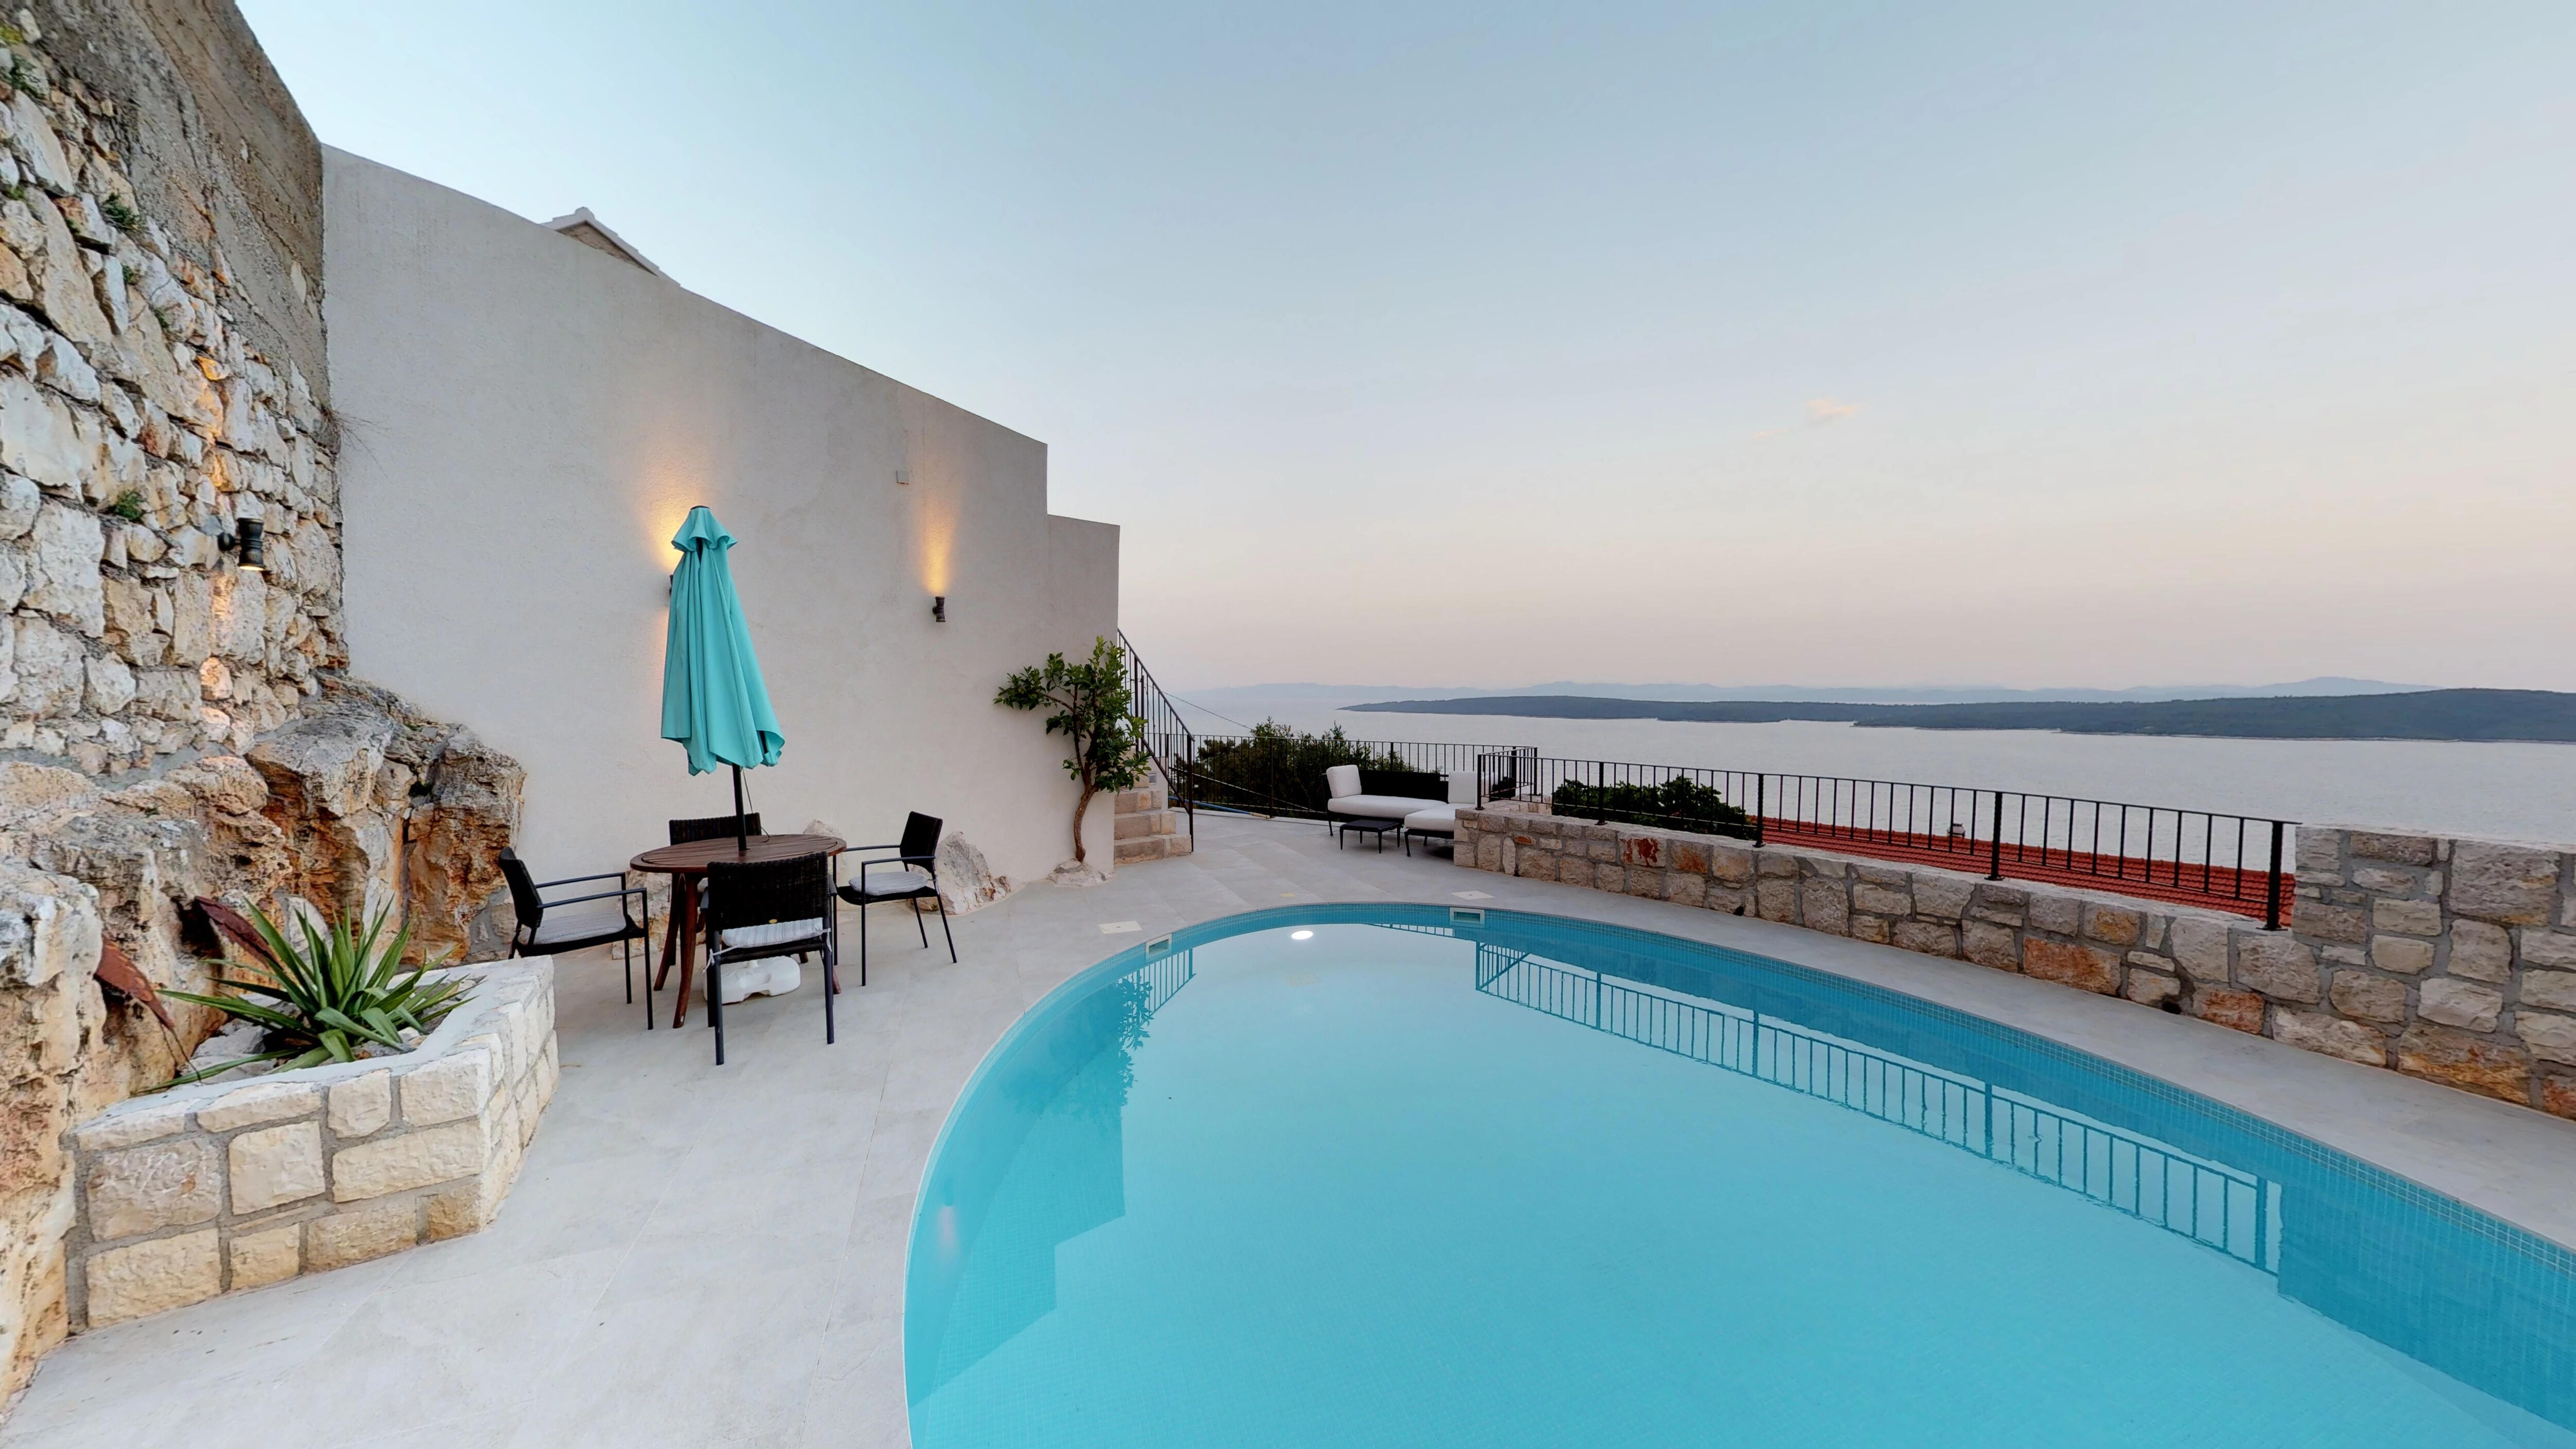 Property Image 2 - Authentic Stone Villa Complex with Spectacular Sea and Island View